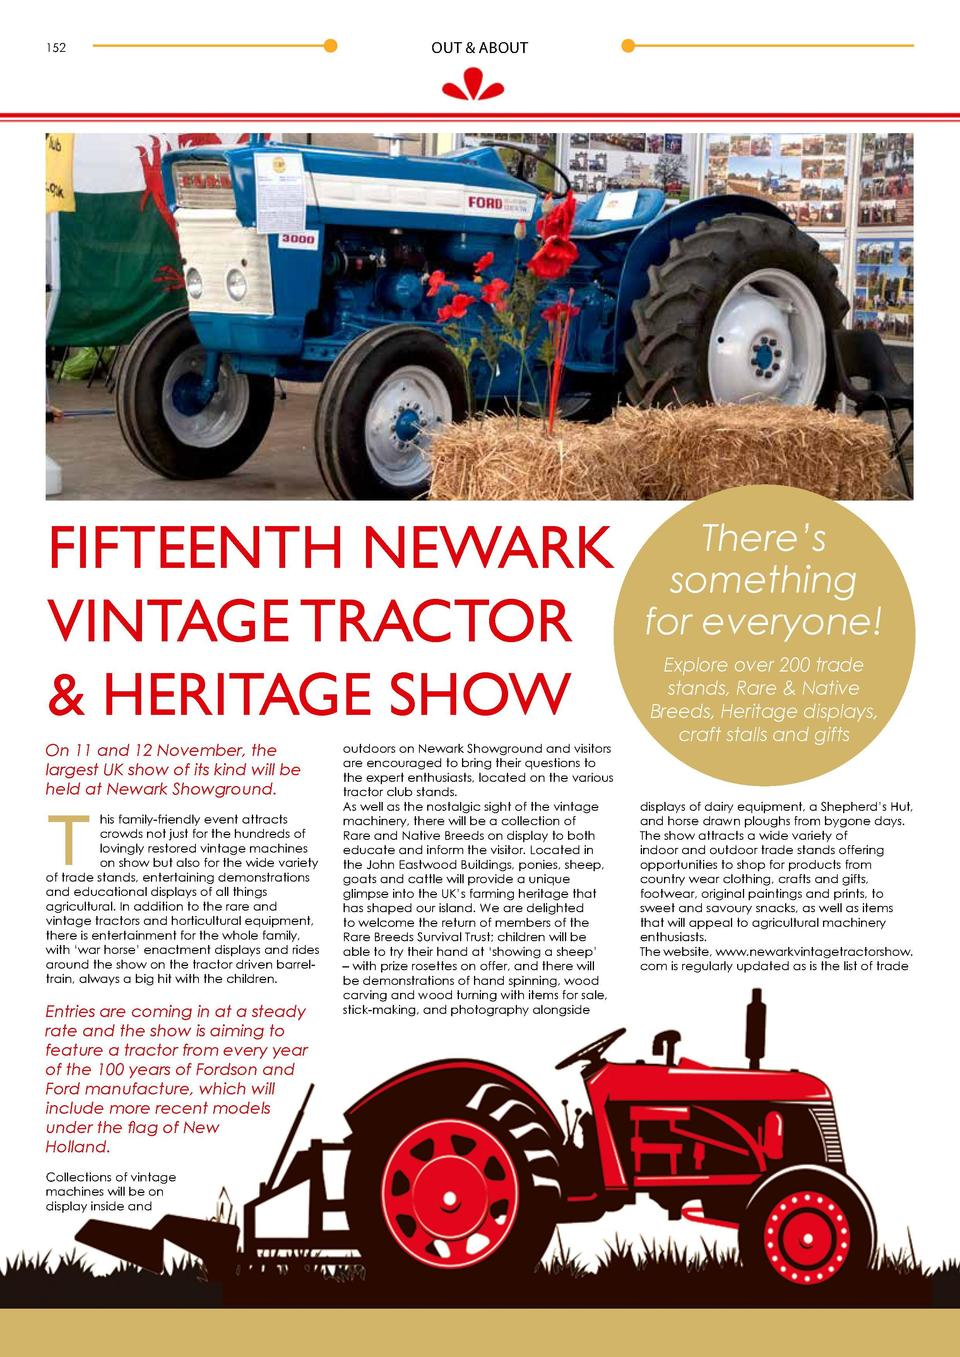 152  OUT   ABOUT  FIFTEENTH NEWARK VINTAGE TRACTOR   HERITAGE SHOW On 11 and 12 November, the largest UK show of its kind ...